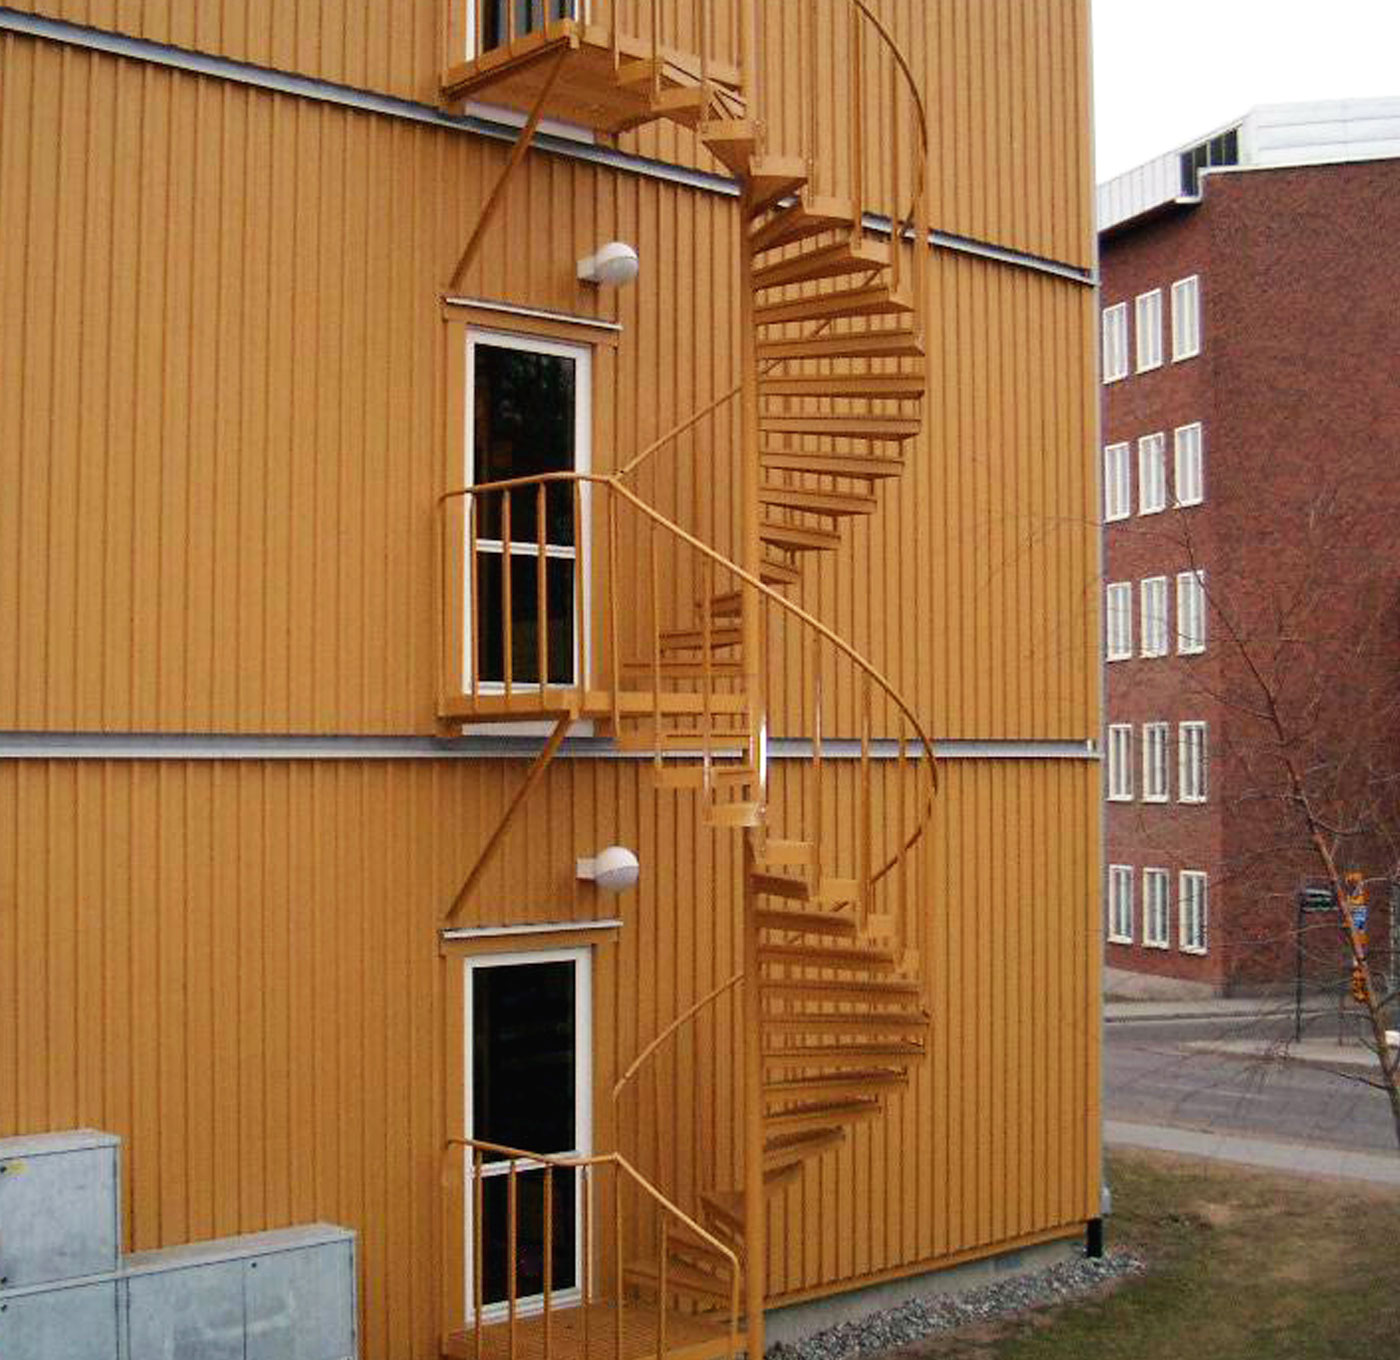 Powder coated spiral staircase outdoors with industrial railing